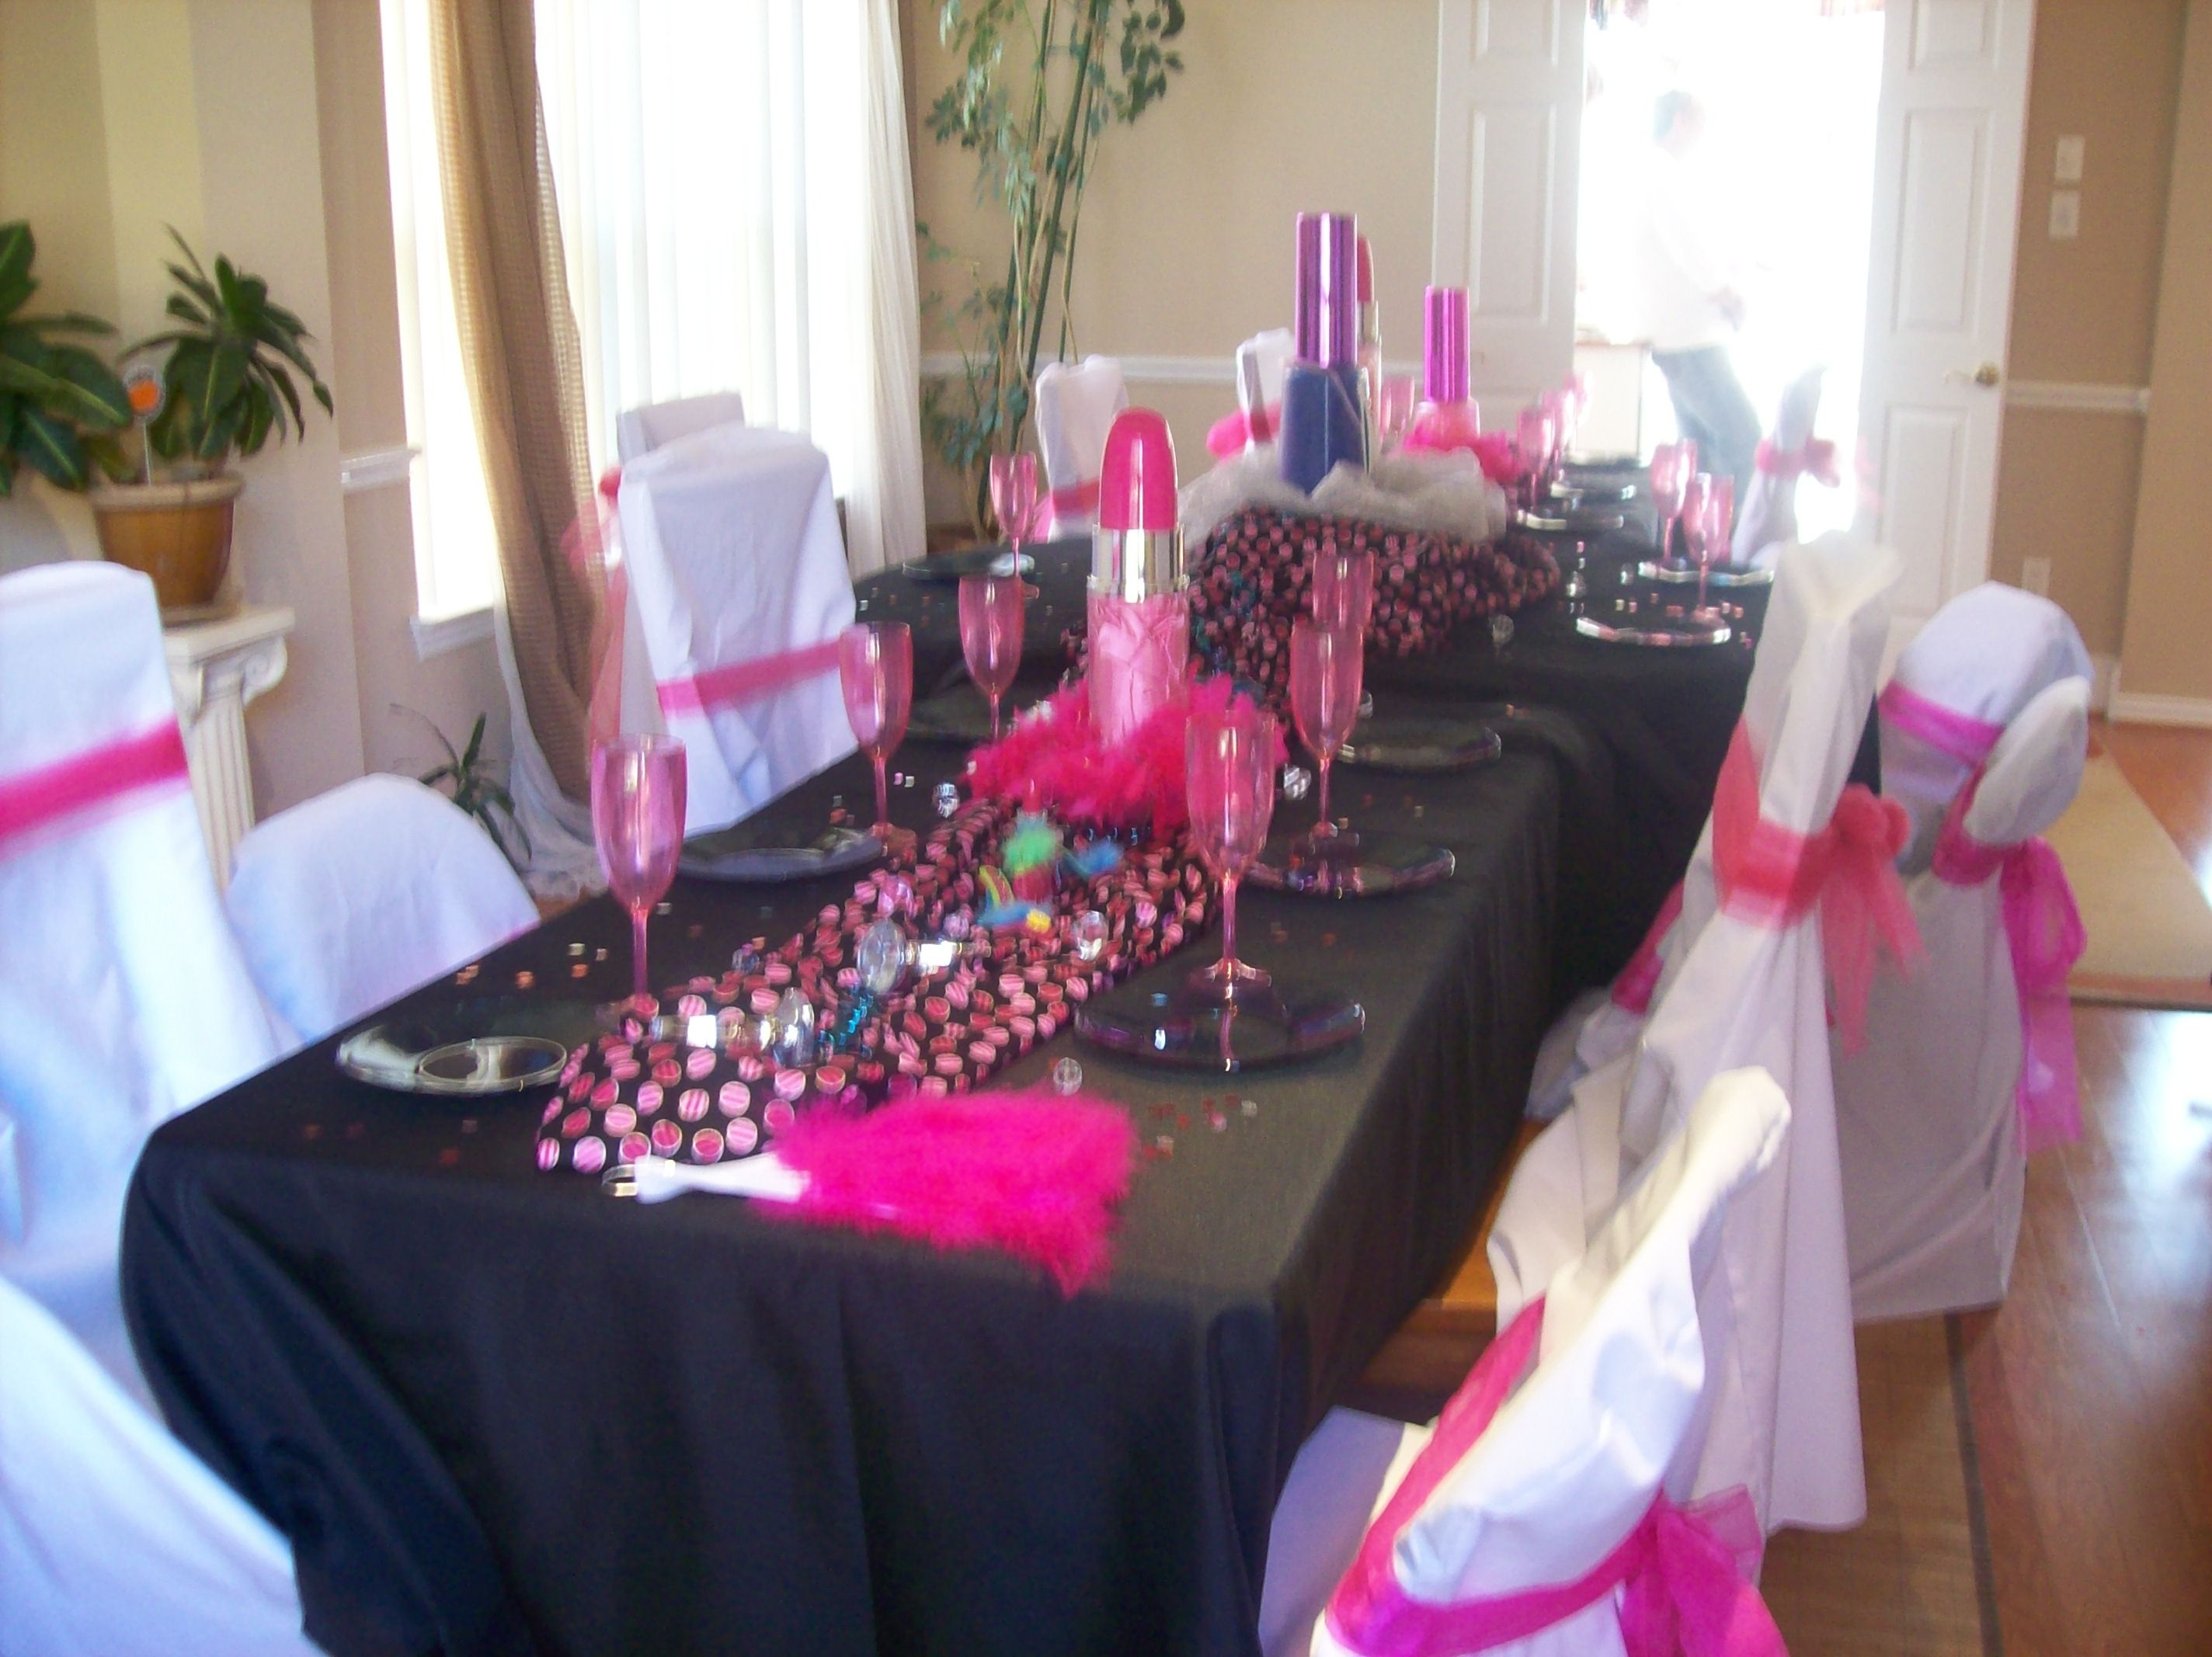 Simple birthday table decoration ideas - Birthday Party Ideas Decorations For Fashion Show Parties Fashion Diva Table Settings Available